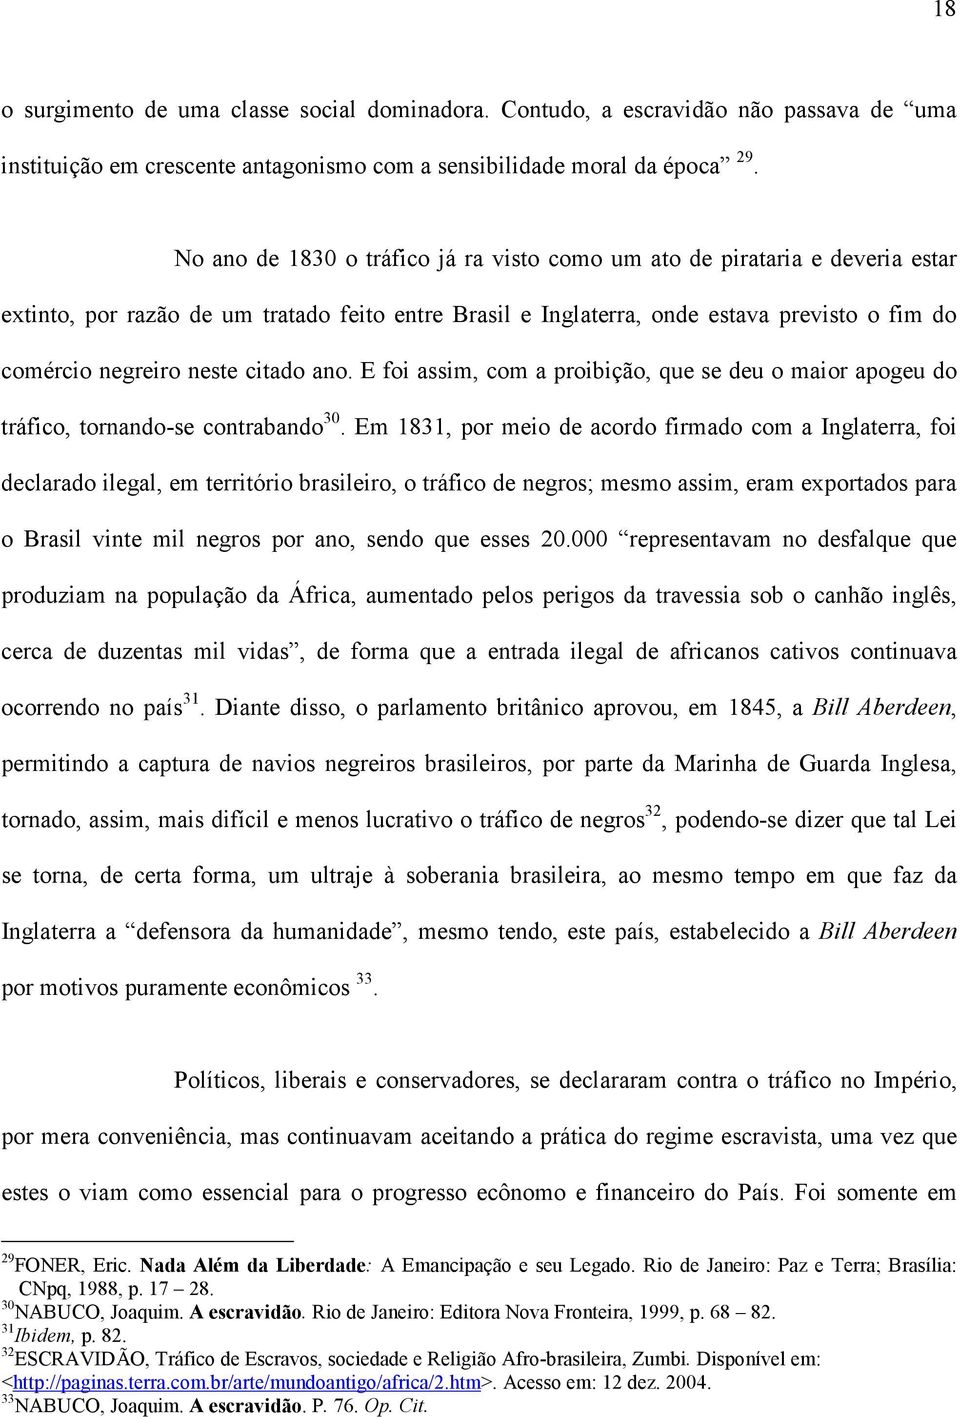 progreso financiero essay This essay is not a lot of things, too, though one can imagine the nots as  for  official liberalism, see tantaleán, política económico-financiera , and its  [11]  sources include a seven-part series política económica, progreso, july-aug.